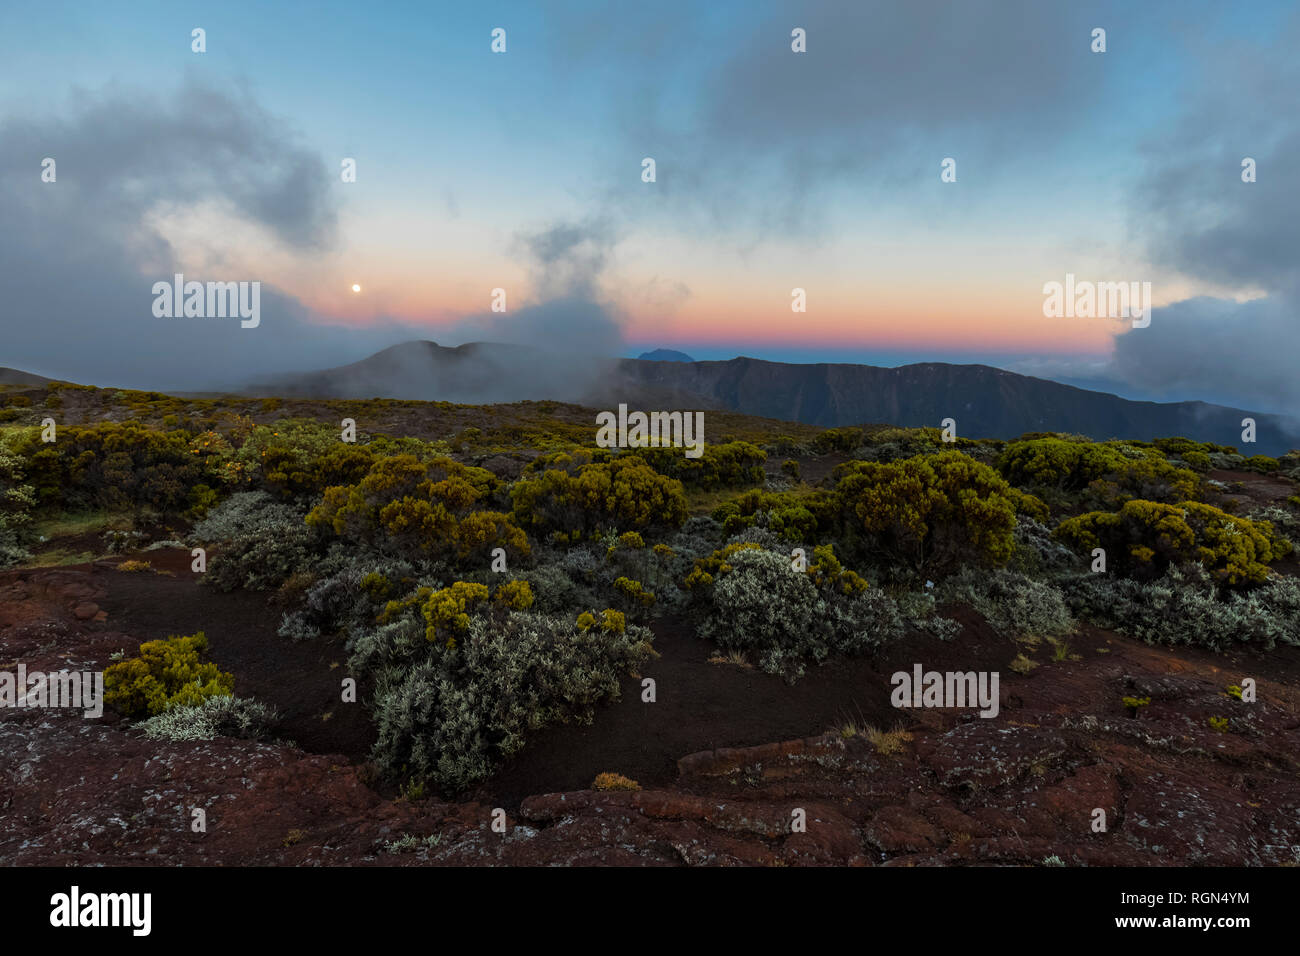 Reunion, Reunion National Park Piton de la Fournaise, full moon - Stock Image